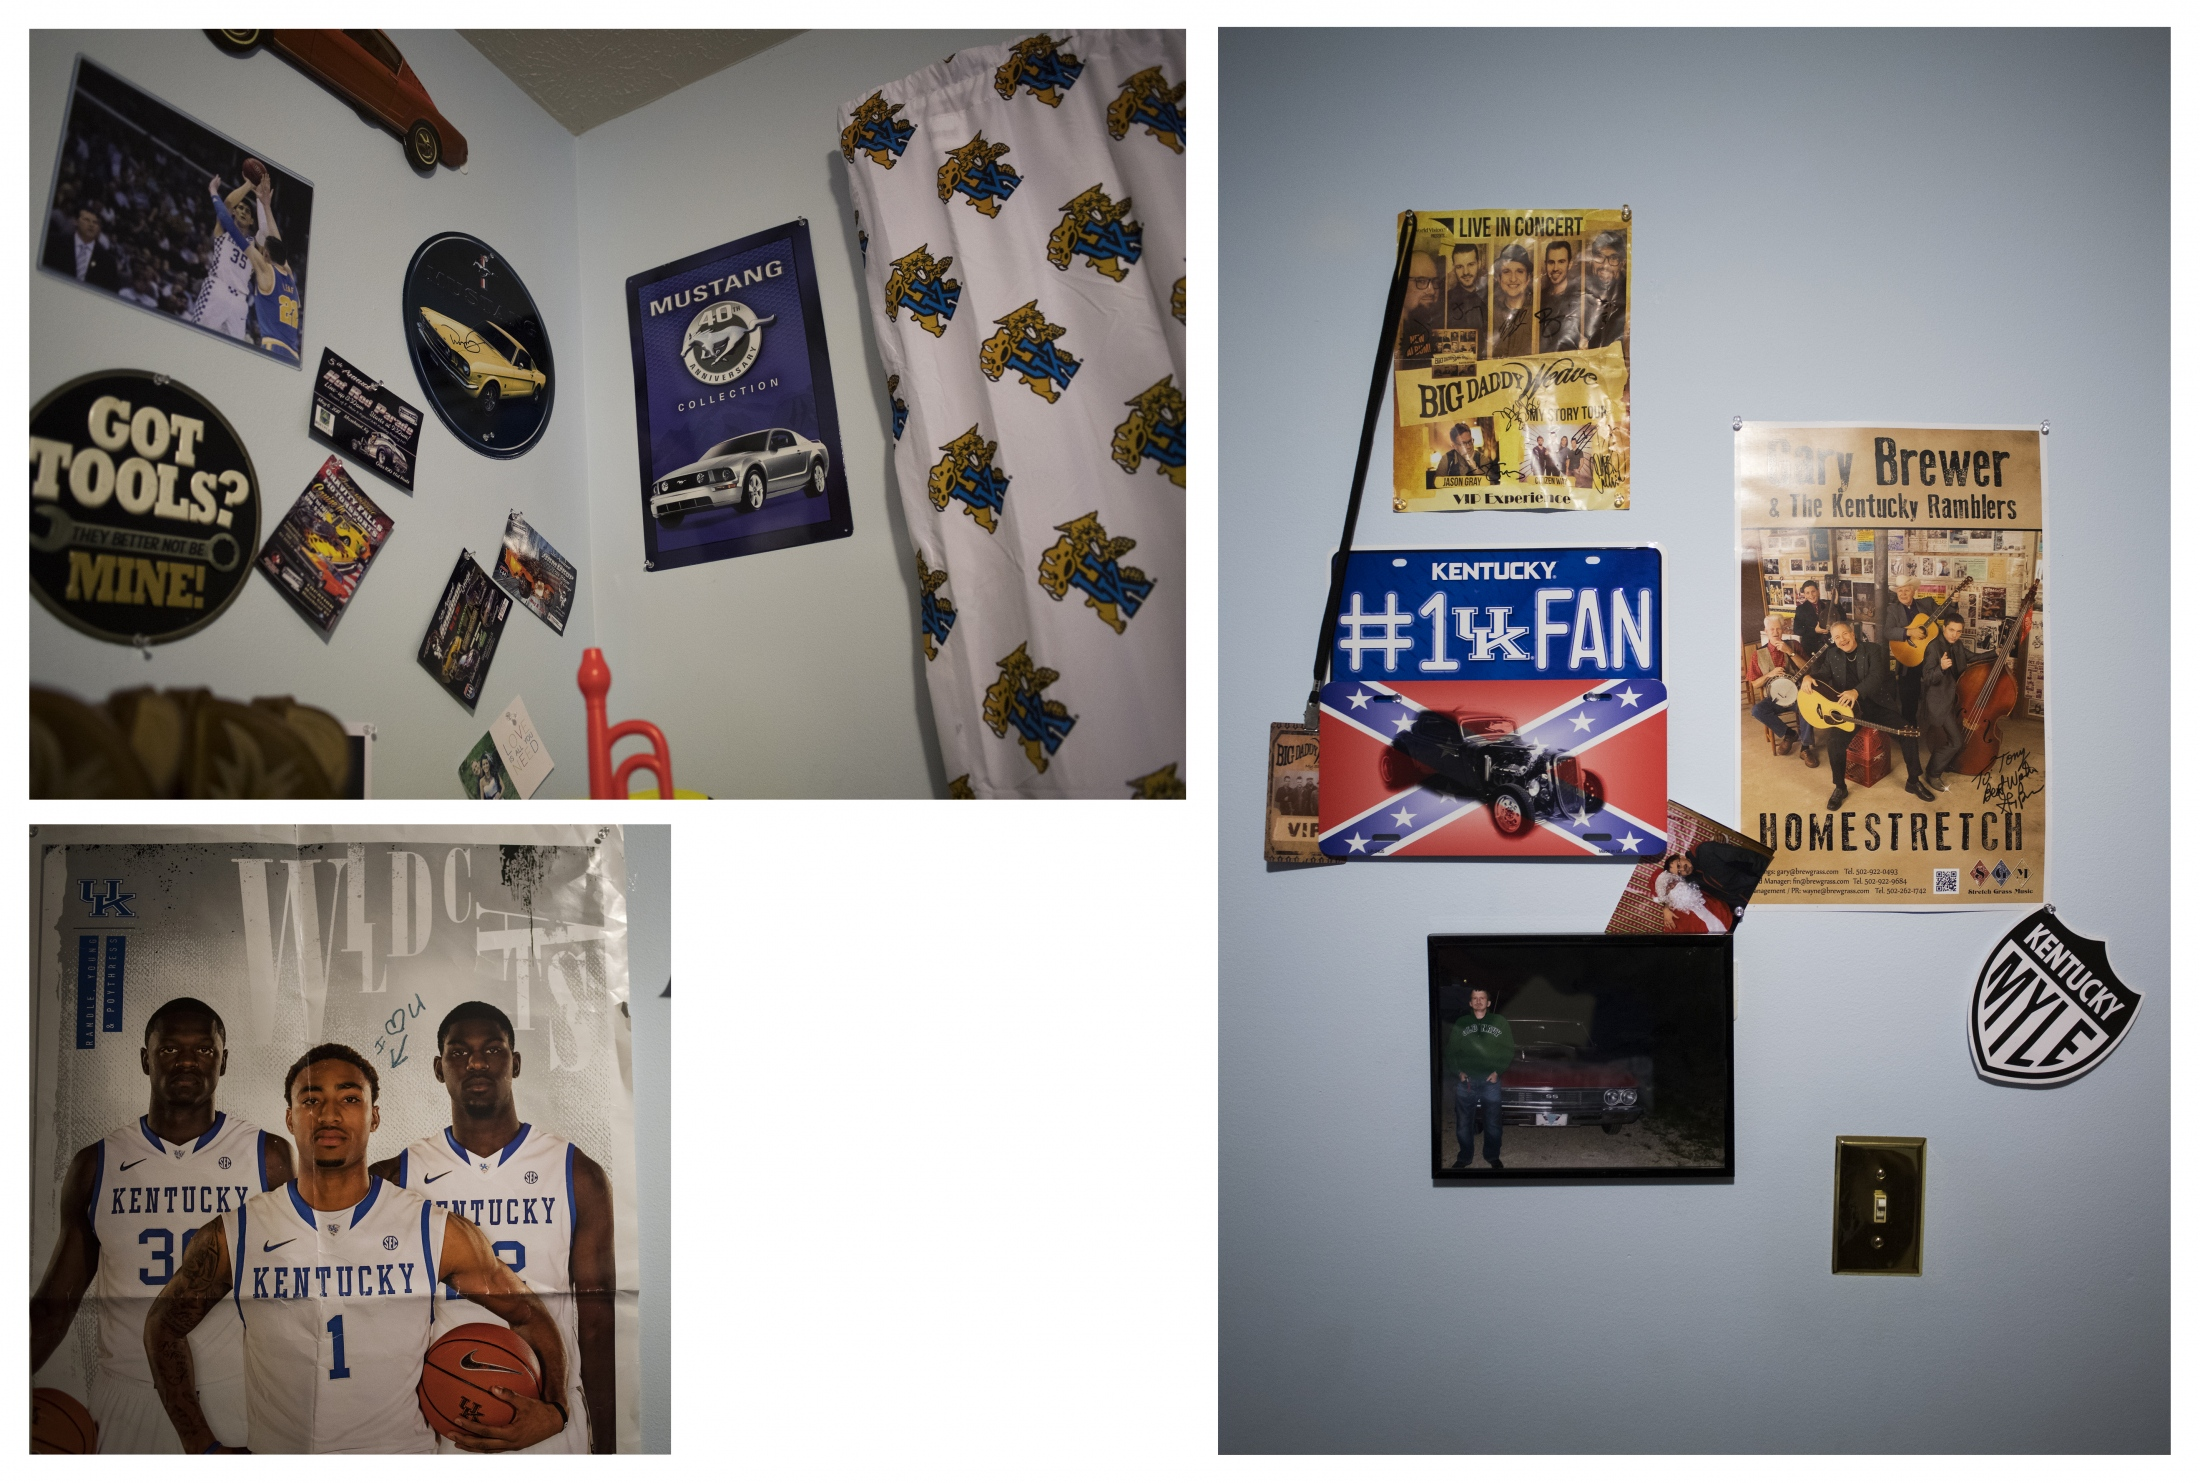 Some of Tony's favorite things, hanging in his room.